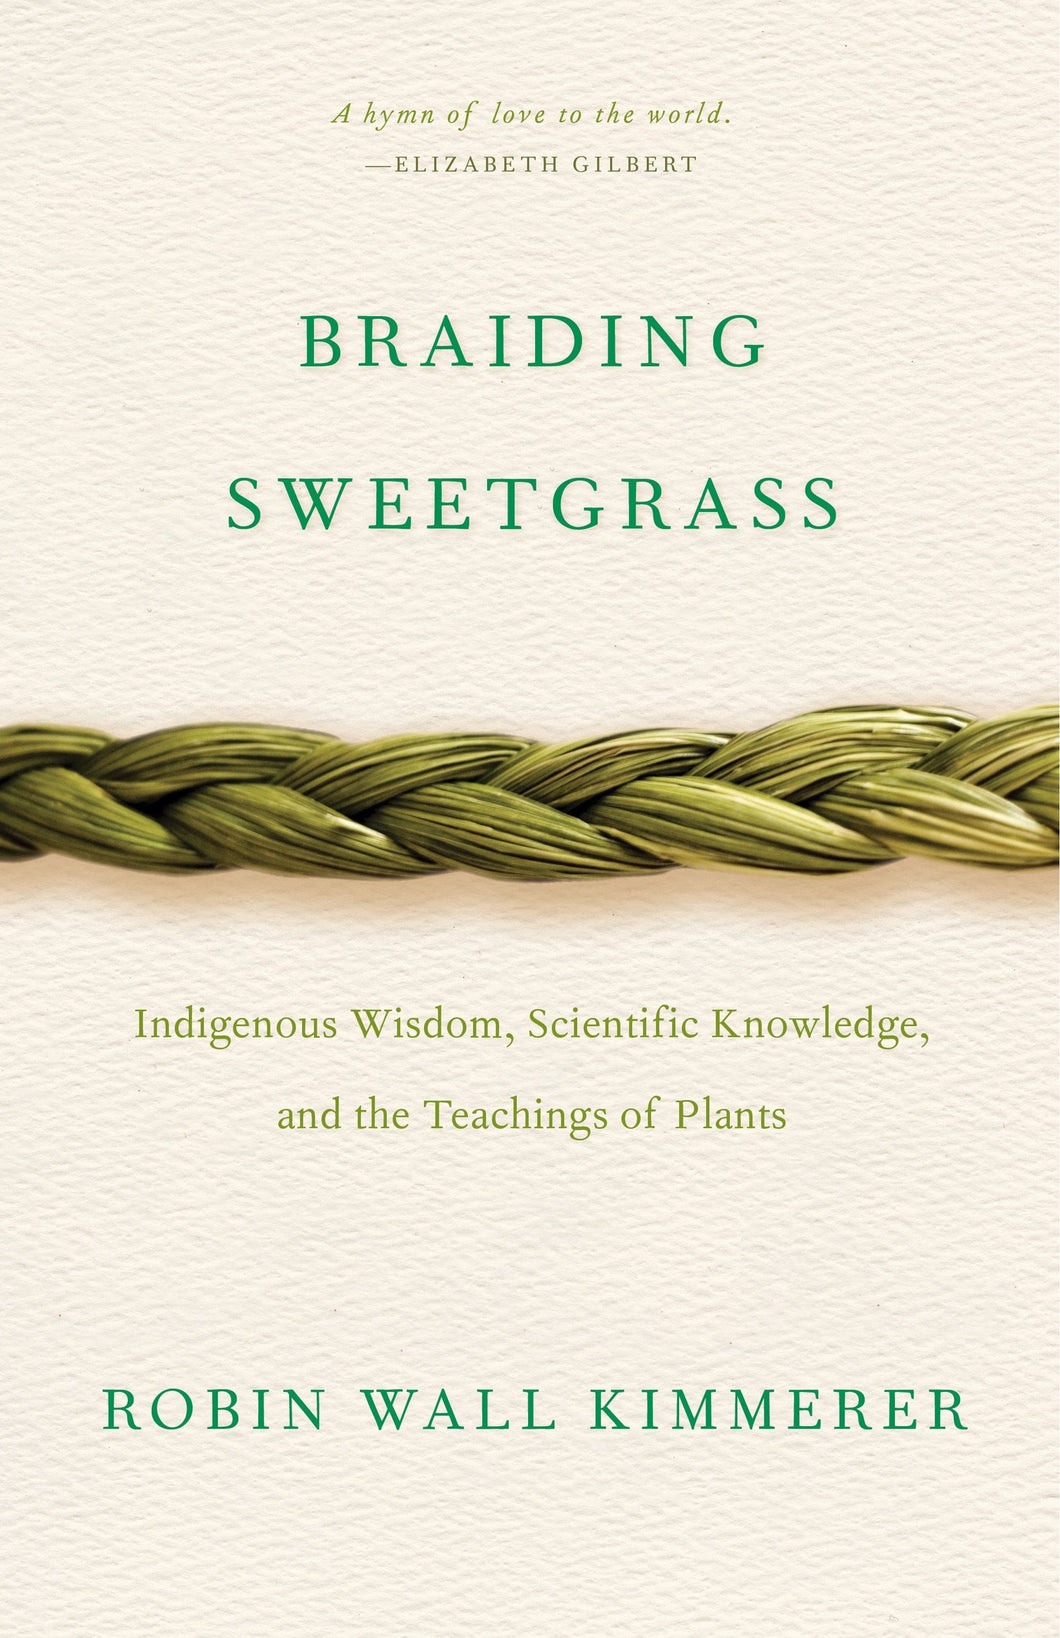 Braiding Sweetgrass: Indigenous Wisdom, Scientific Knowledge and the Teachings of Plants by Robin Wall Kimmerer